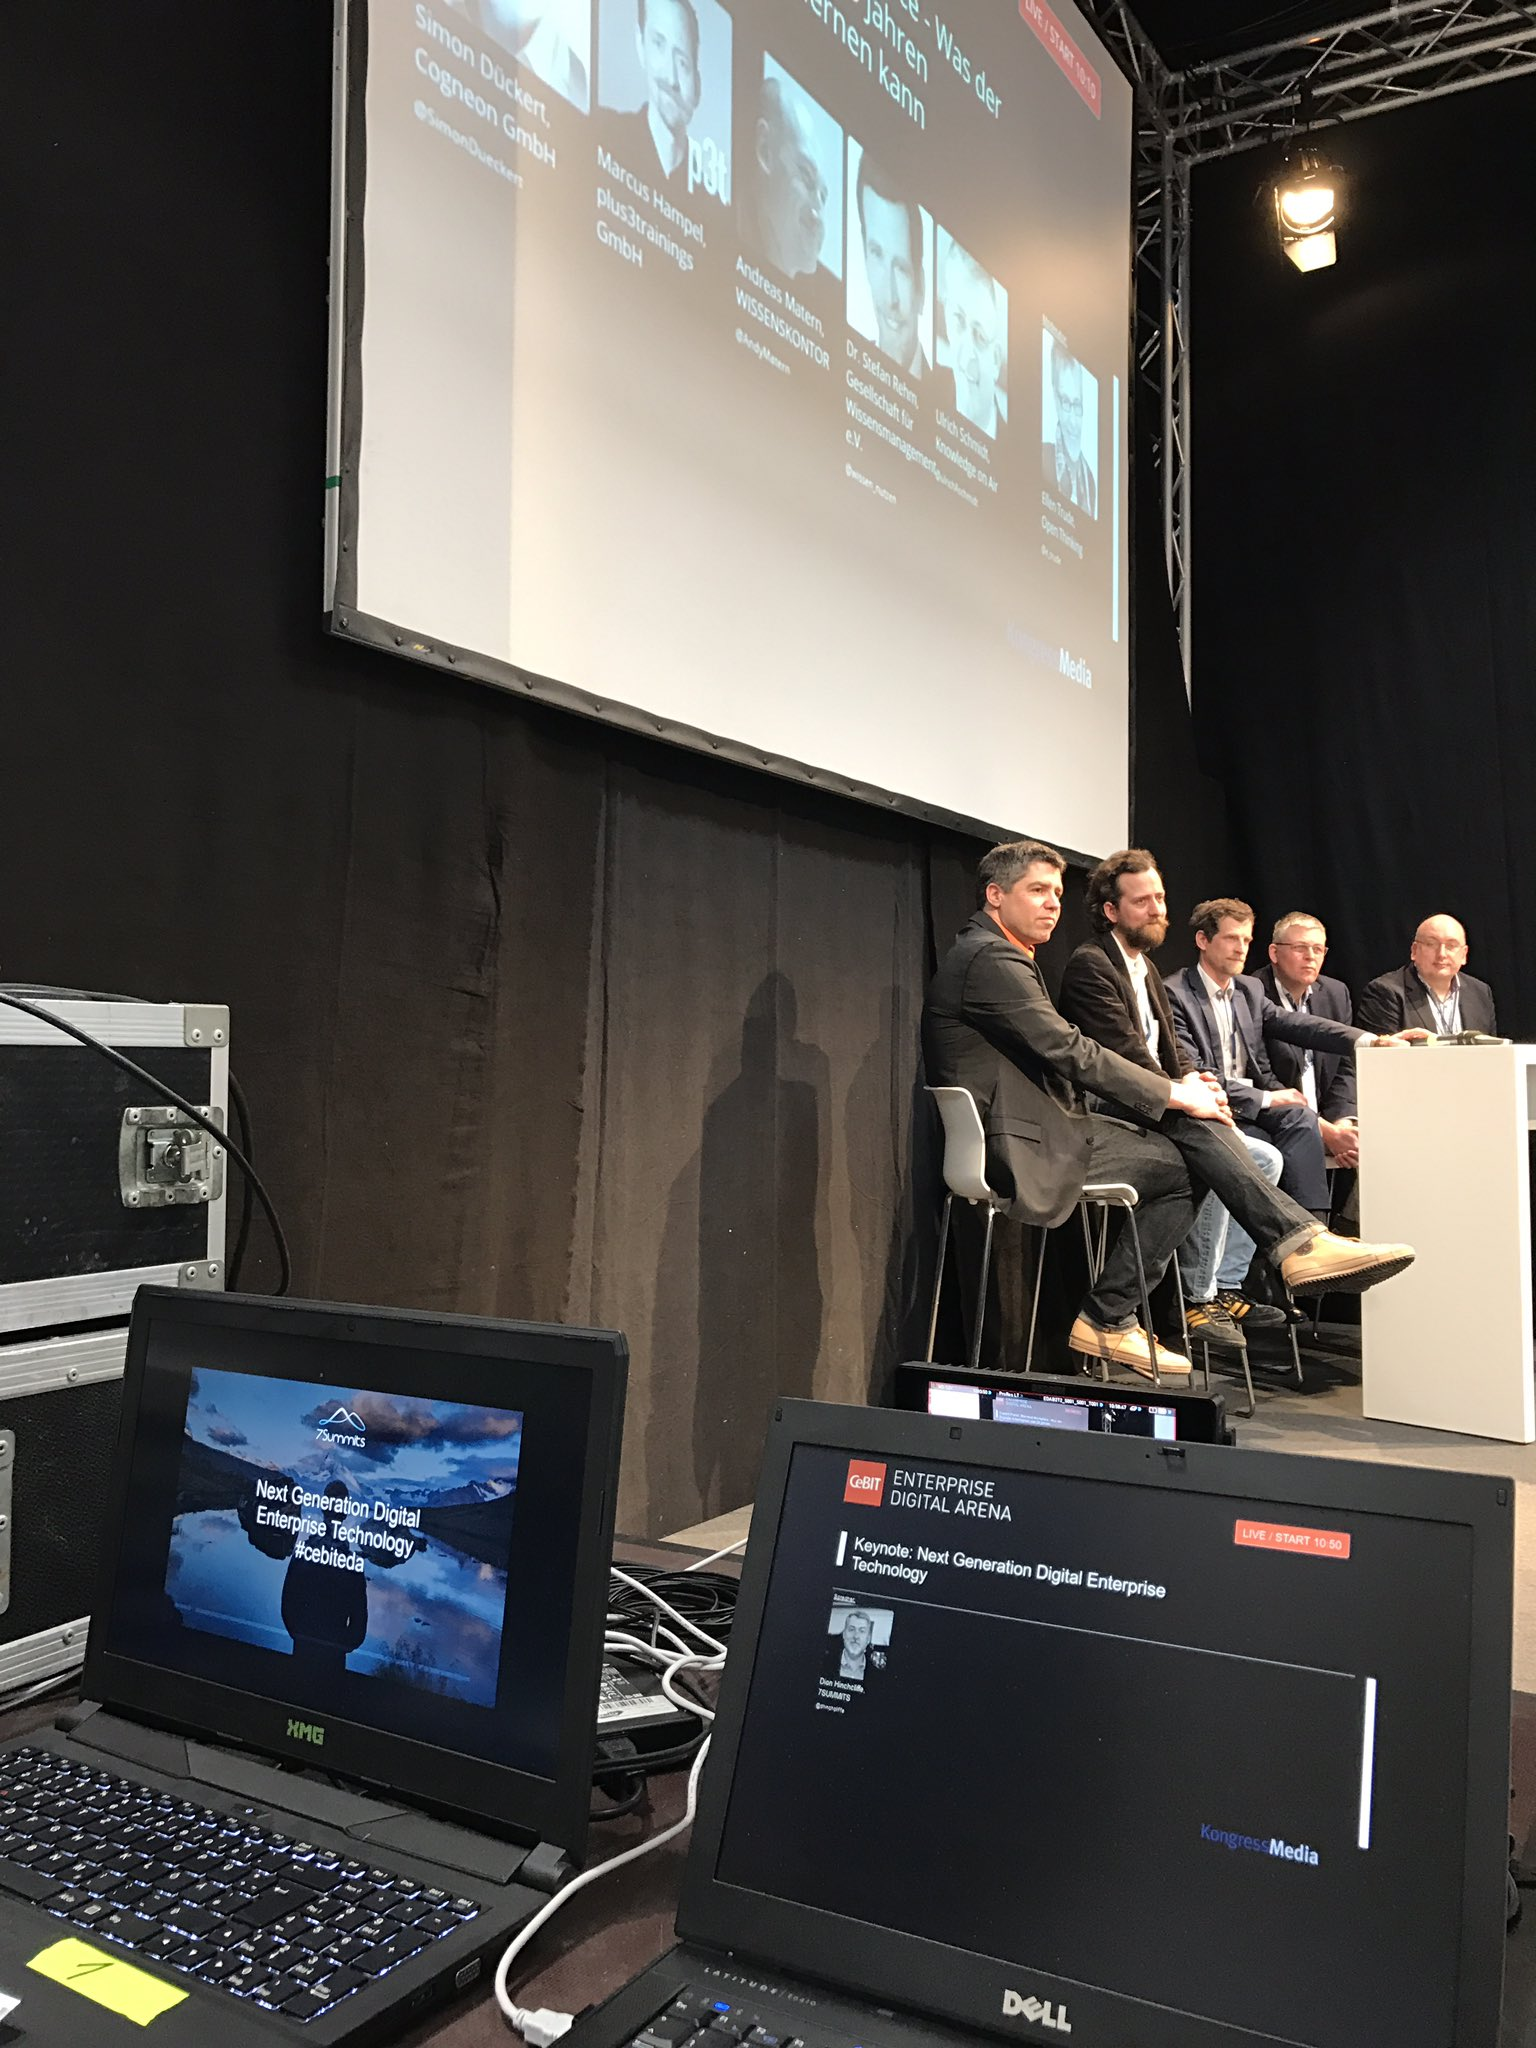 Watching @simondueckert, @andymatern, @wissen_nutzen, @ulrichAschmidt as I'm about to go up onstage at #cebiteda w/ @alecmcint. #CeBIT17 https://t.co/yj0QBqNHD1